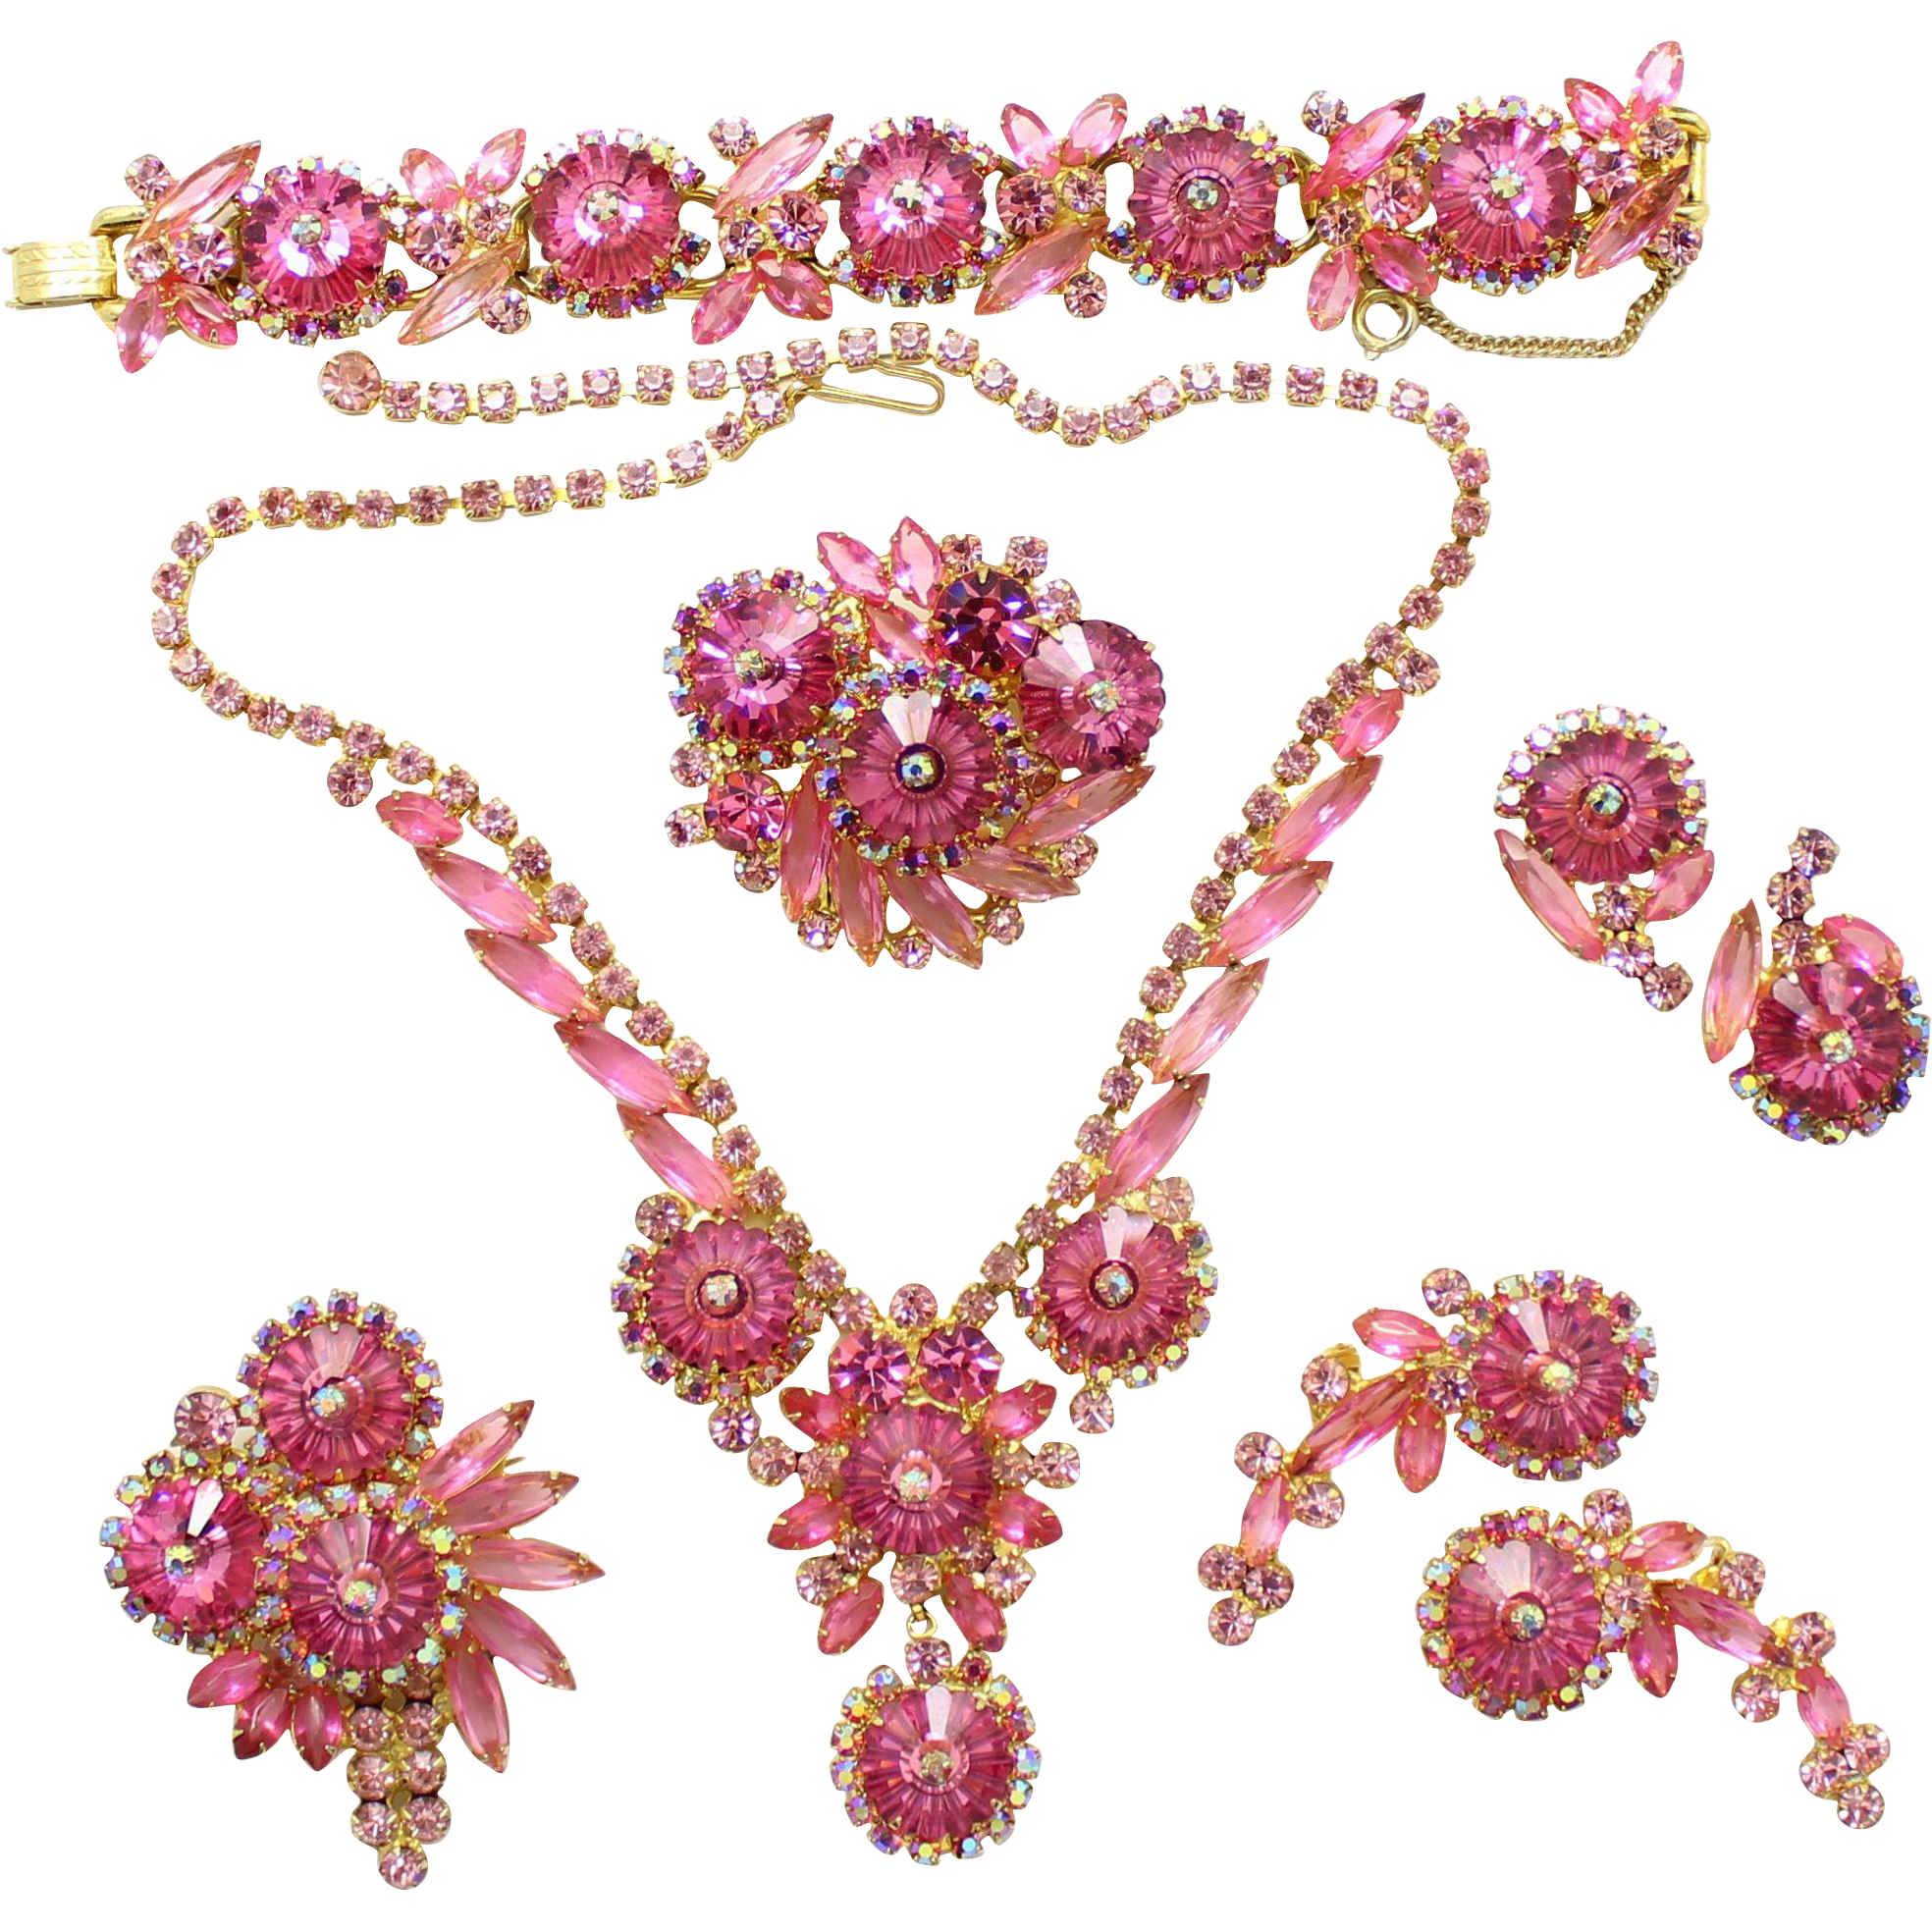 Vintage Juliana (D and E) Book Piece Grand Parure Pink Margarita Rivoli Rhinestone Necklace, Bracelet, 2 Brooches and 2 pair Earrings Grand Parure